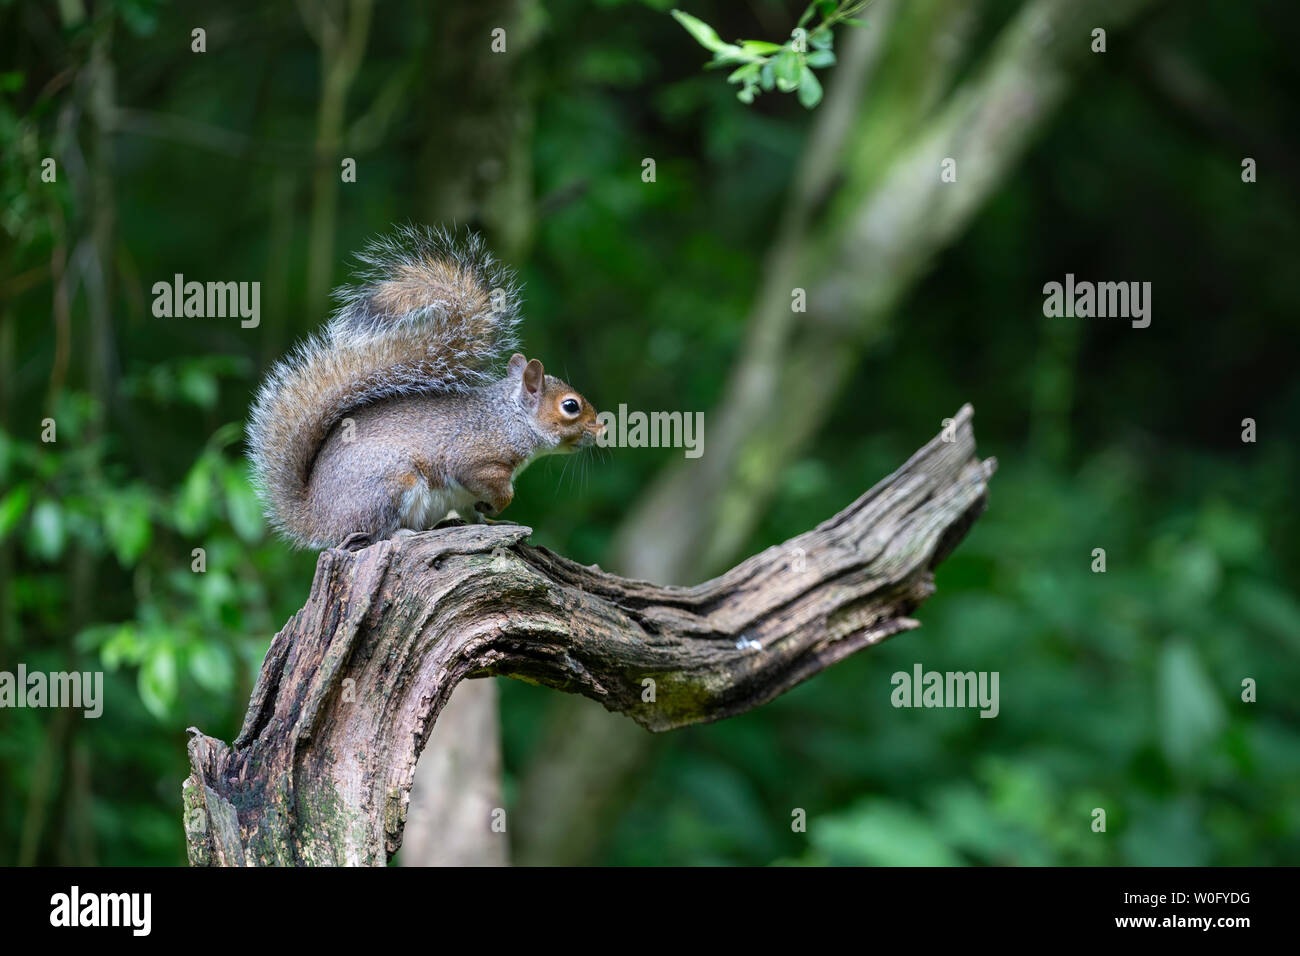 Eastern Gray squirrel or Grey squirrel Sciurus carolinensis siting on an attractive curved tree branch in profile displaying its long bushy tail Stock Photo